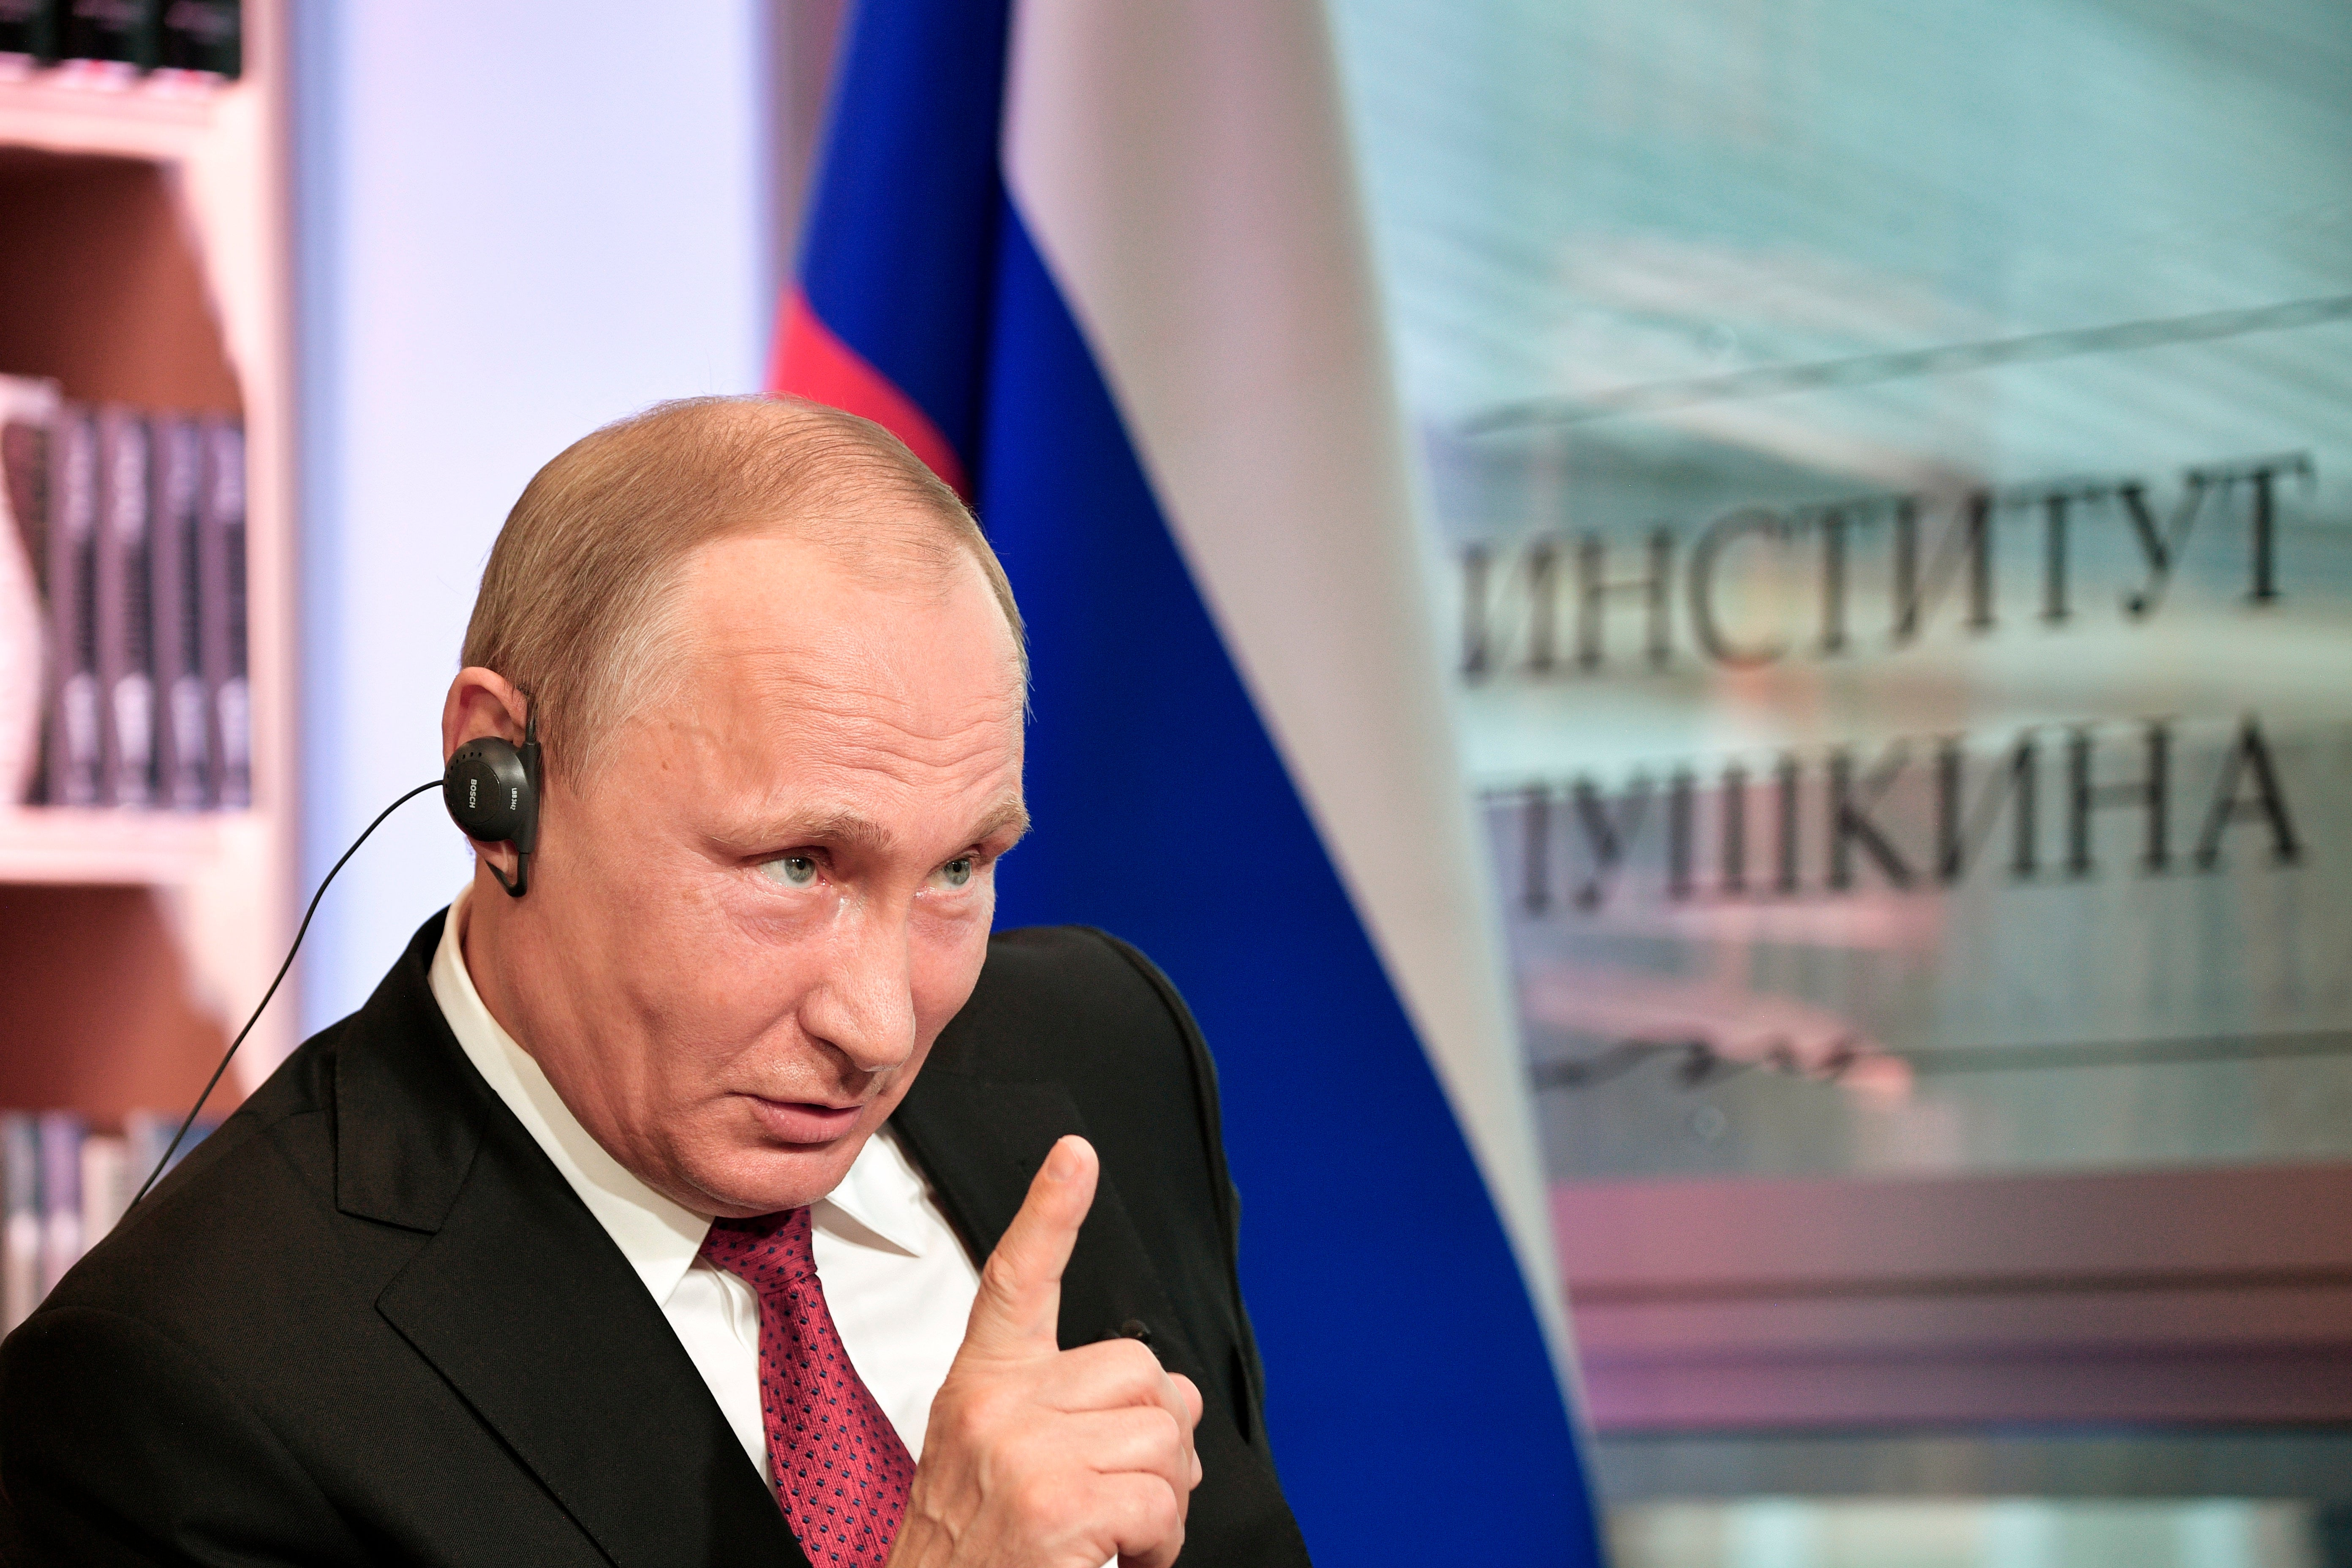 Putin Praises 'Patriotic' Russian Hackers He Definitely Doesn't Know Or Employ